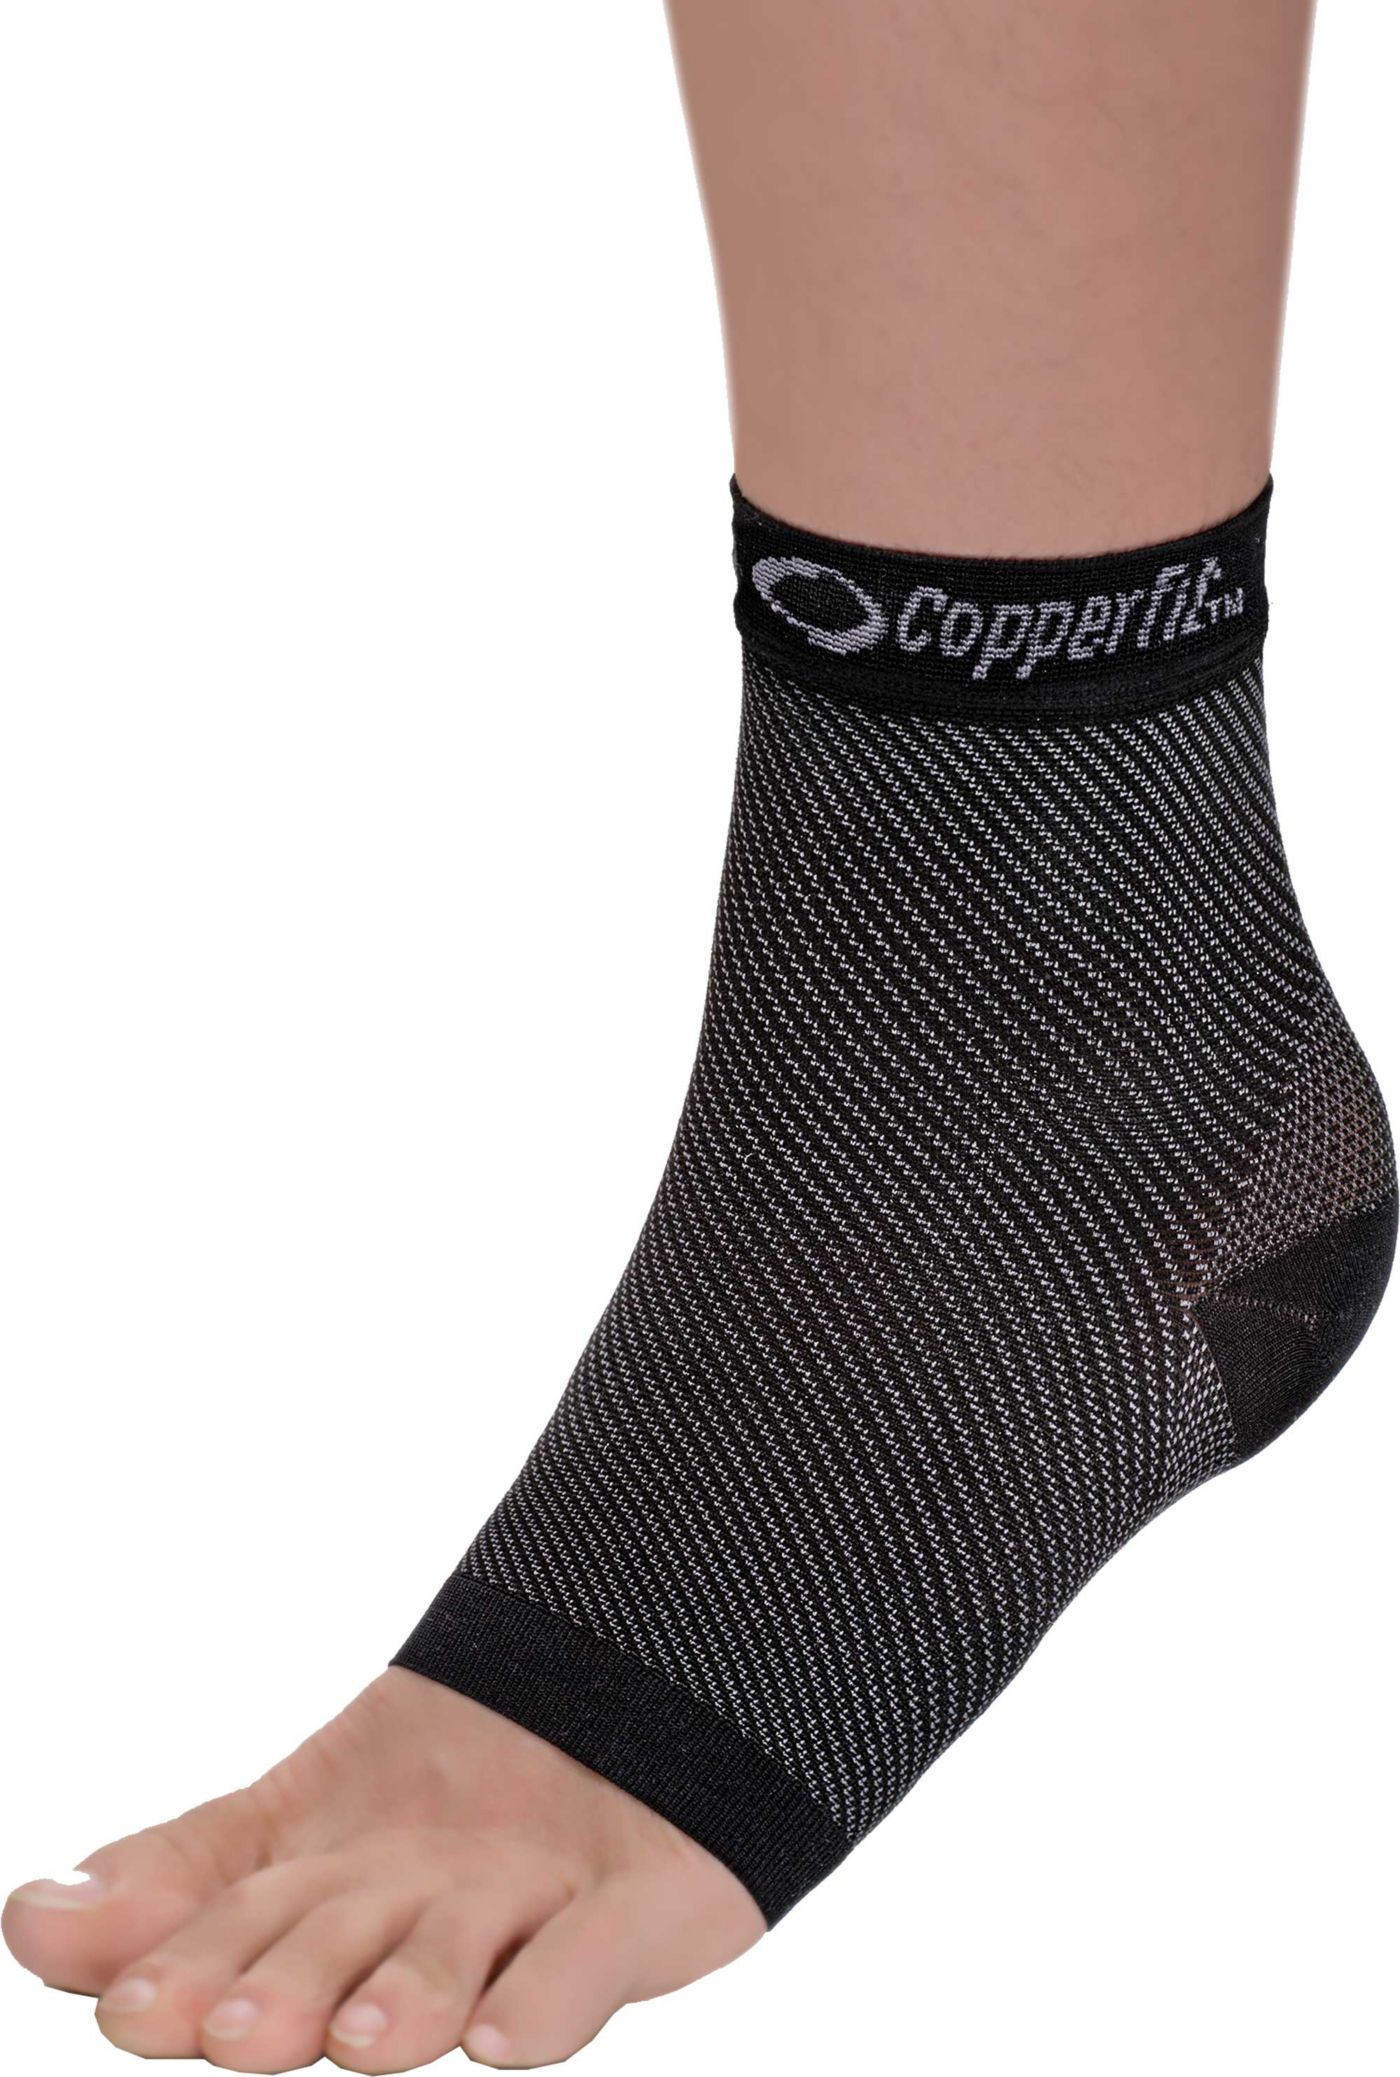 Copper Fit Advanced Compression Ankle Sleeve